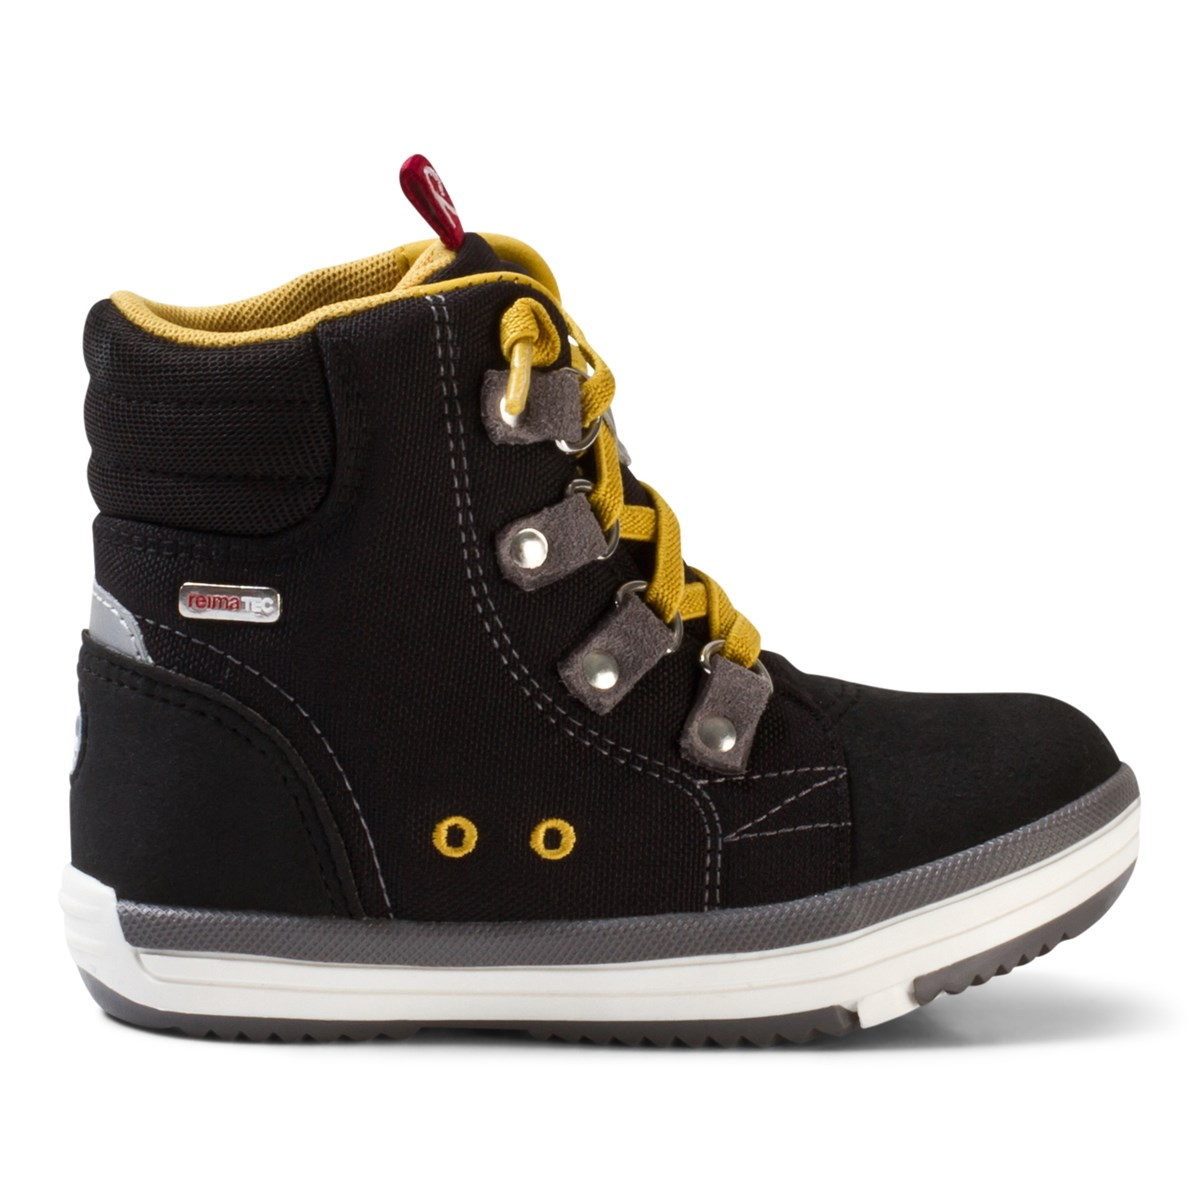 Reima Wetter Wash Reimatec Shoes Black Babyshop Com